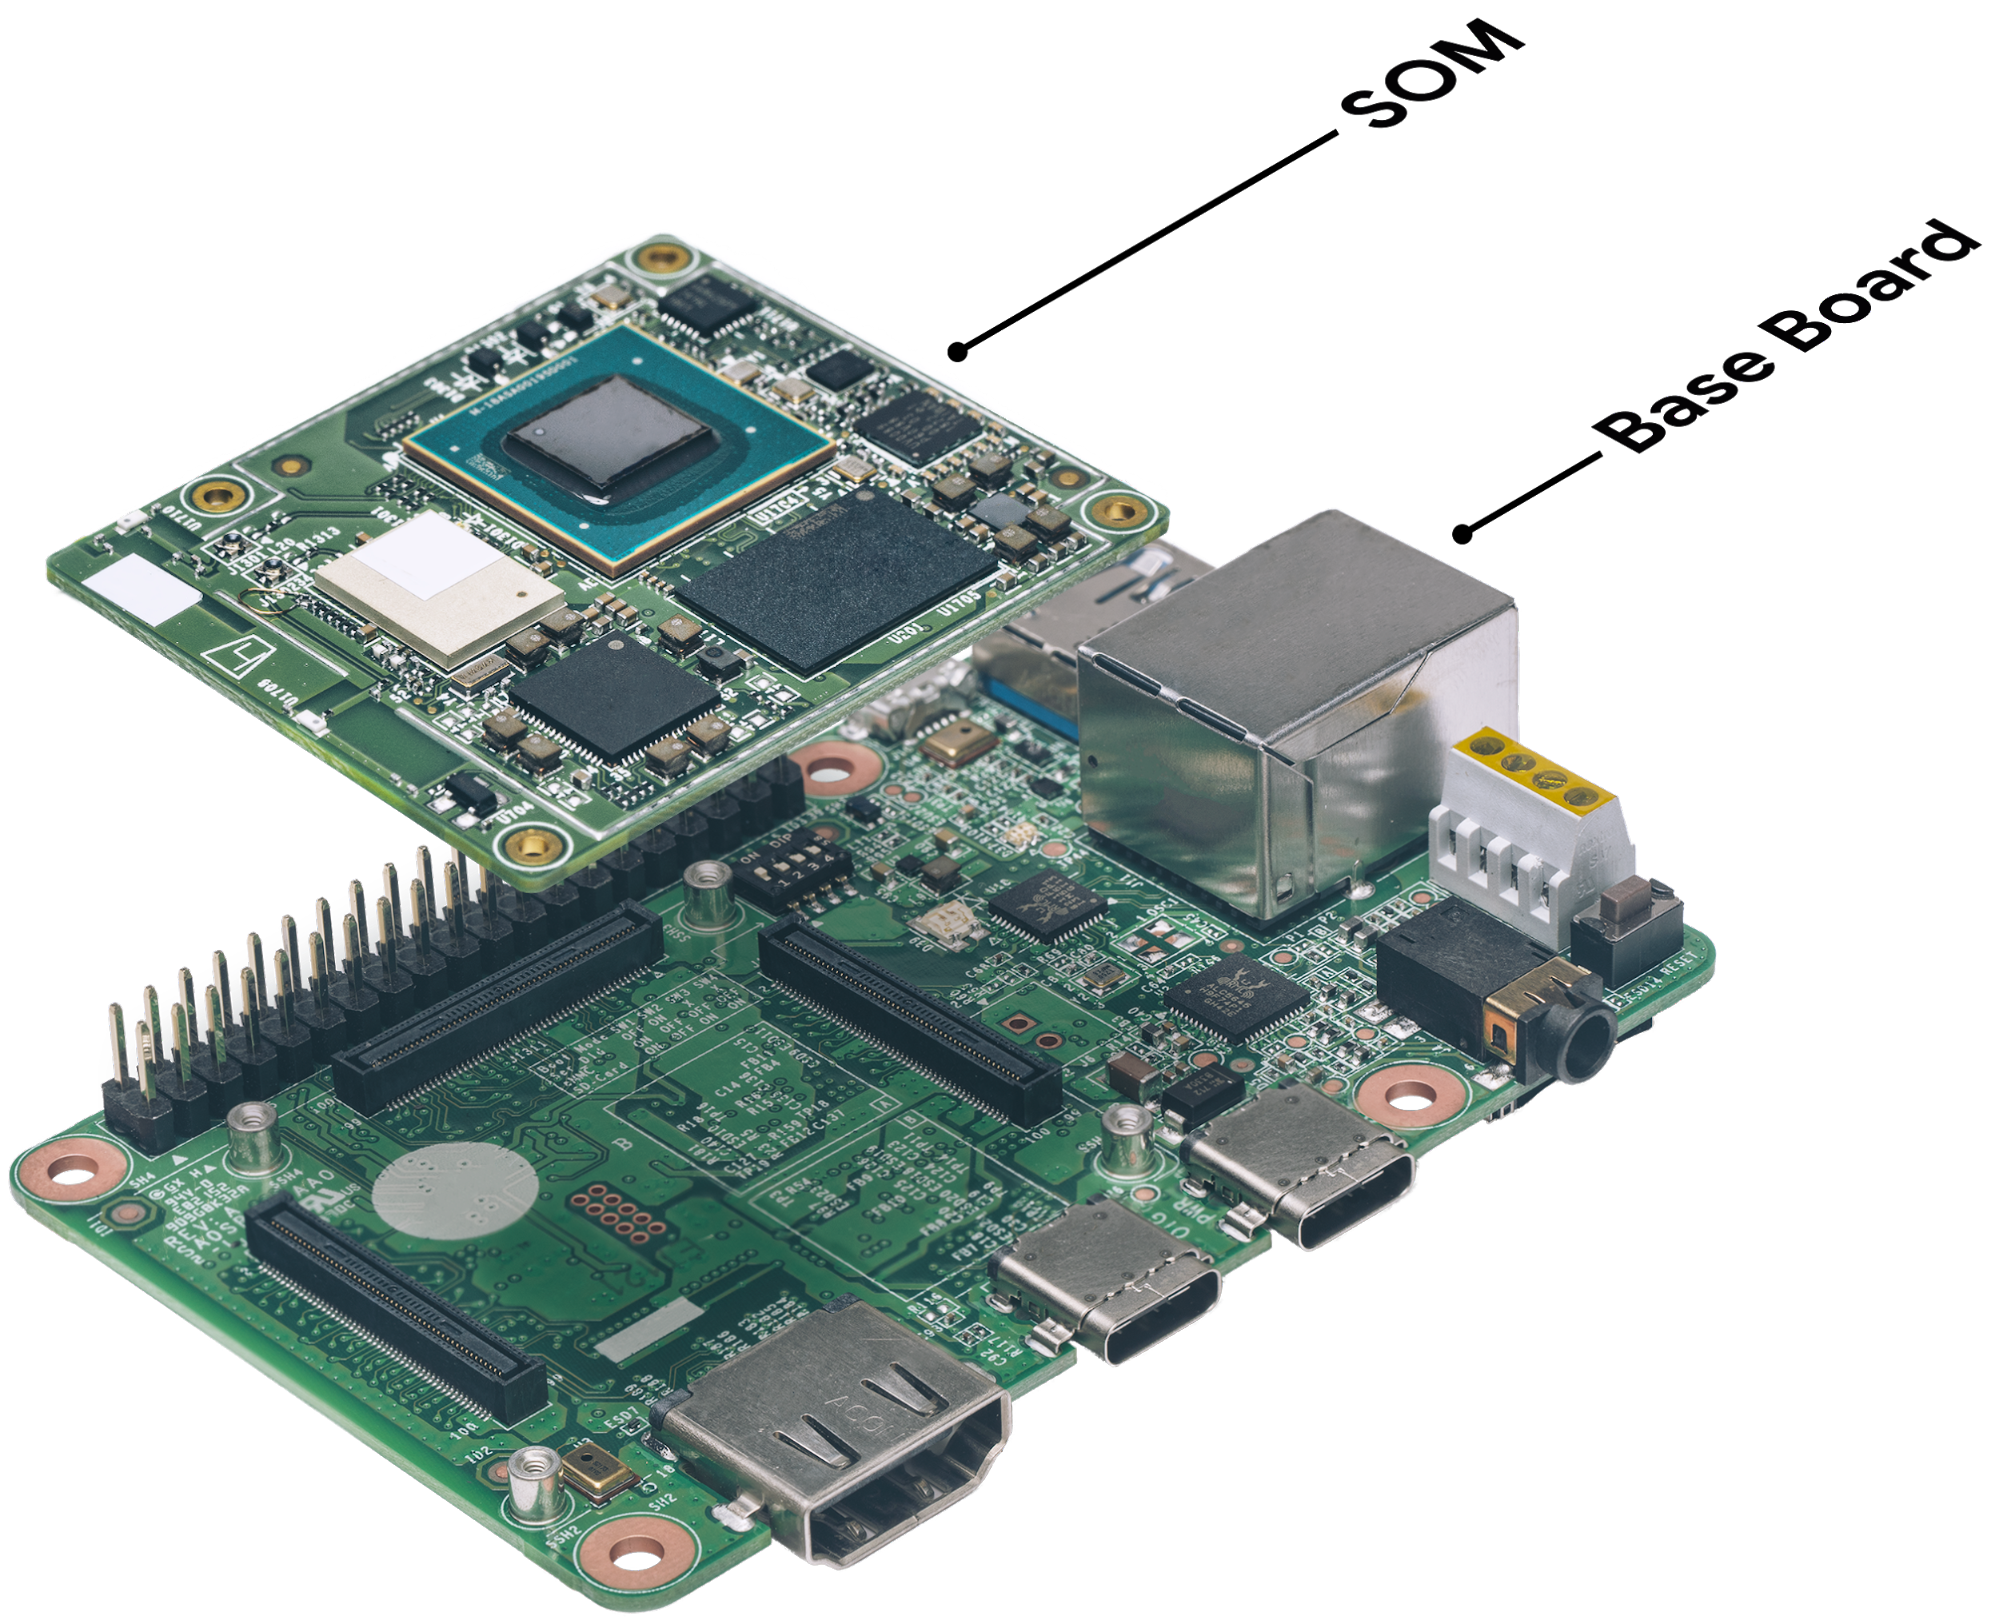 Google Releases Edge Tpu And Cloud Iot At Next Circuit Board With Electronic Components Inside A Computer Stock Photo